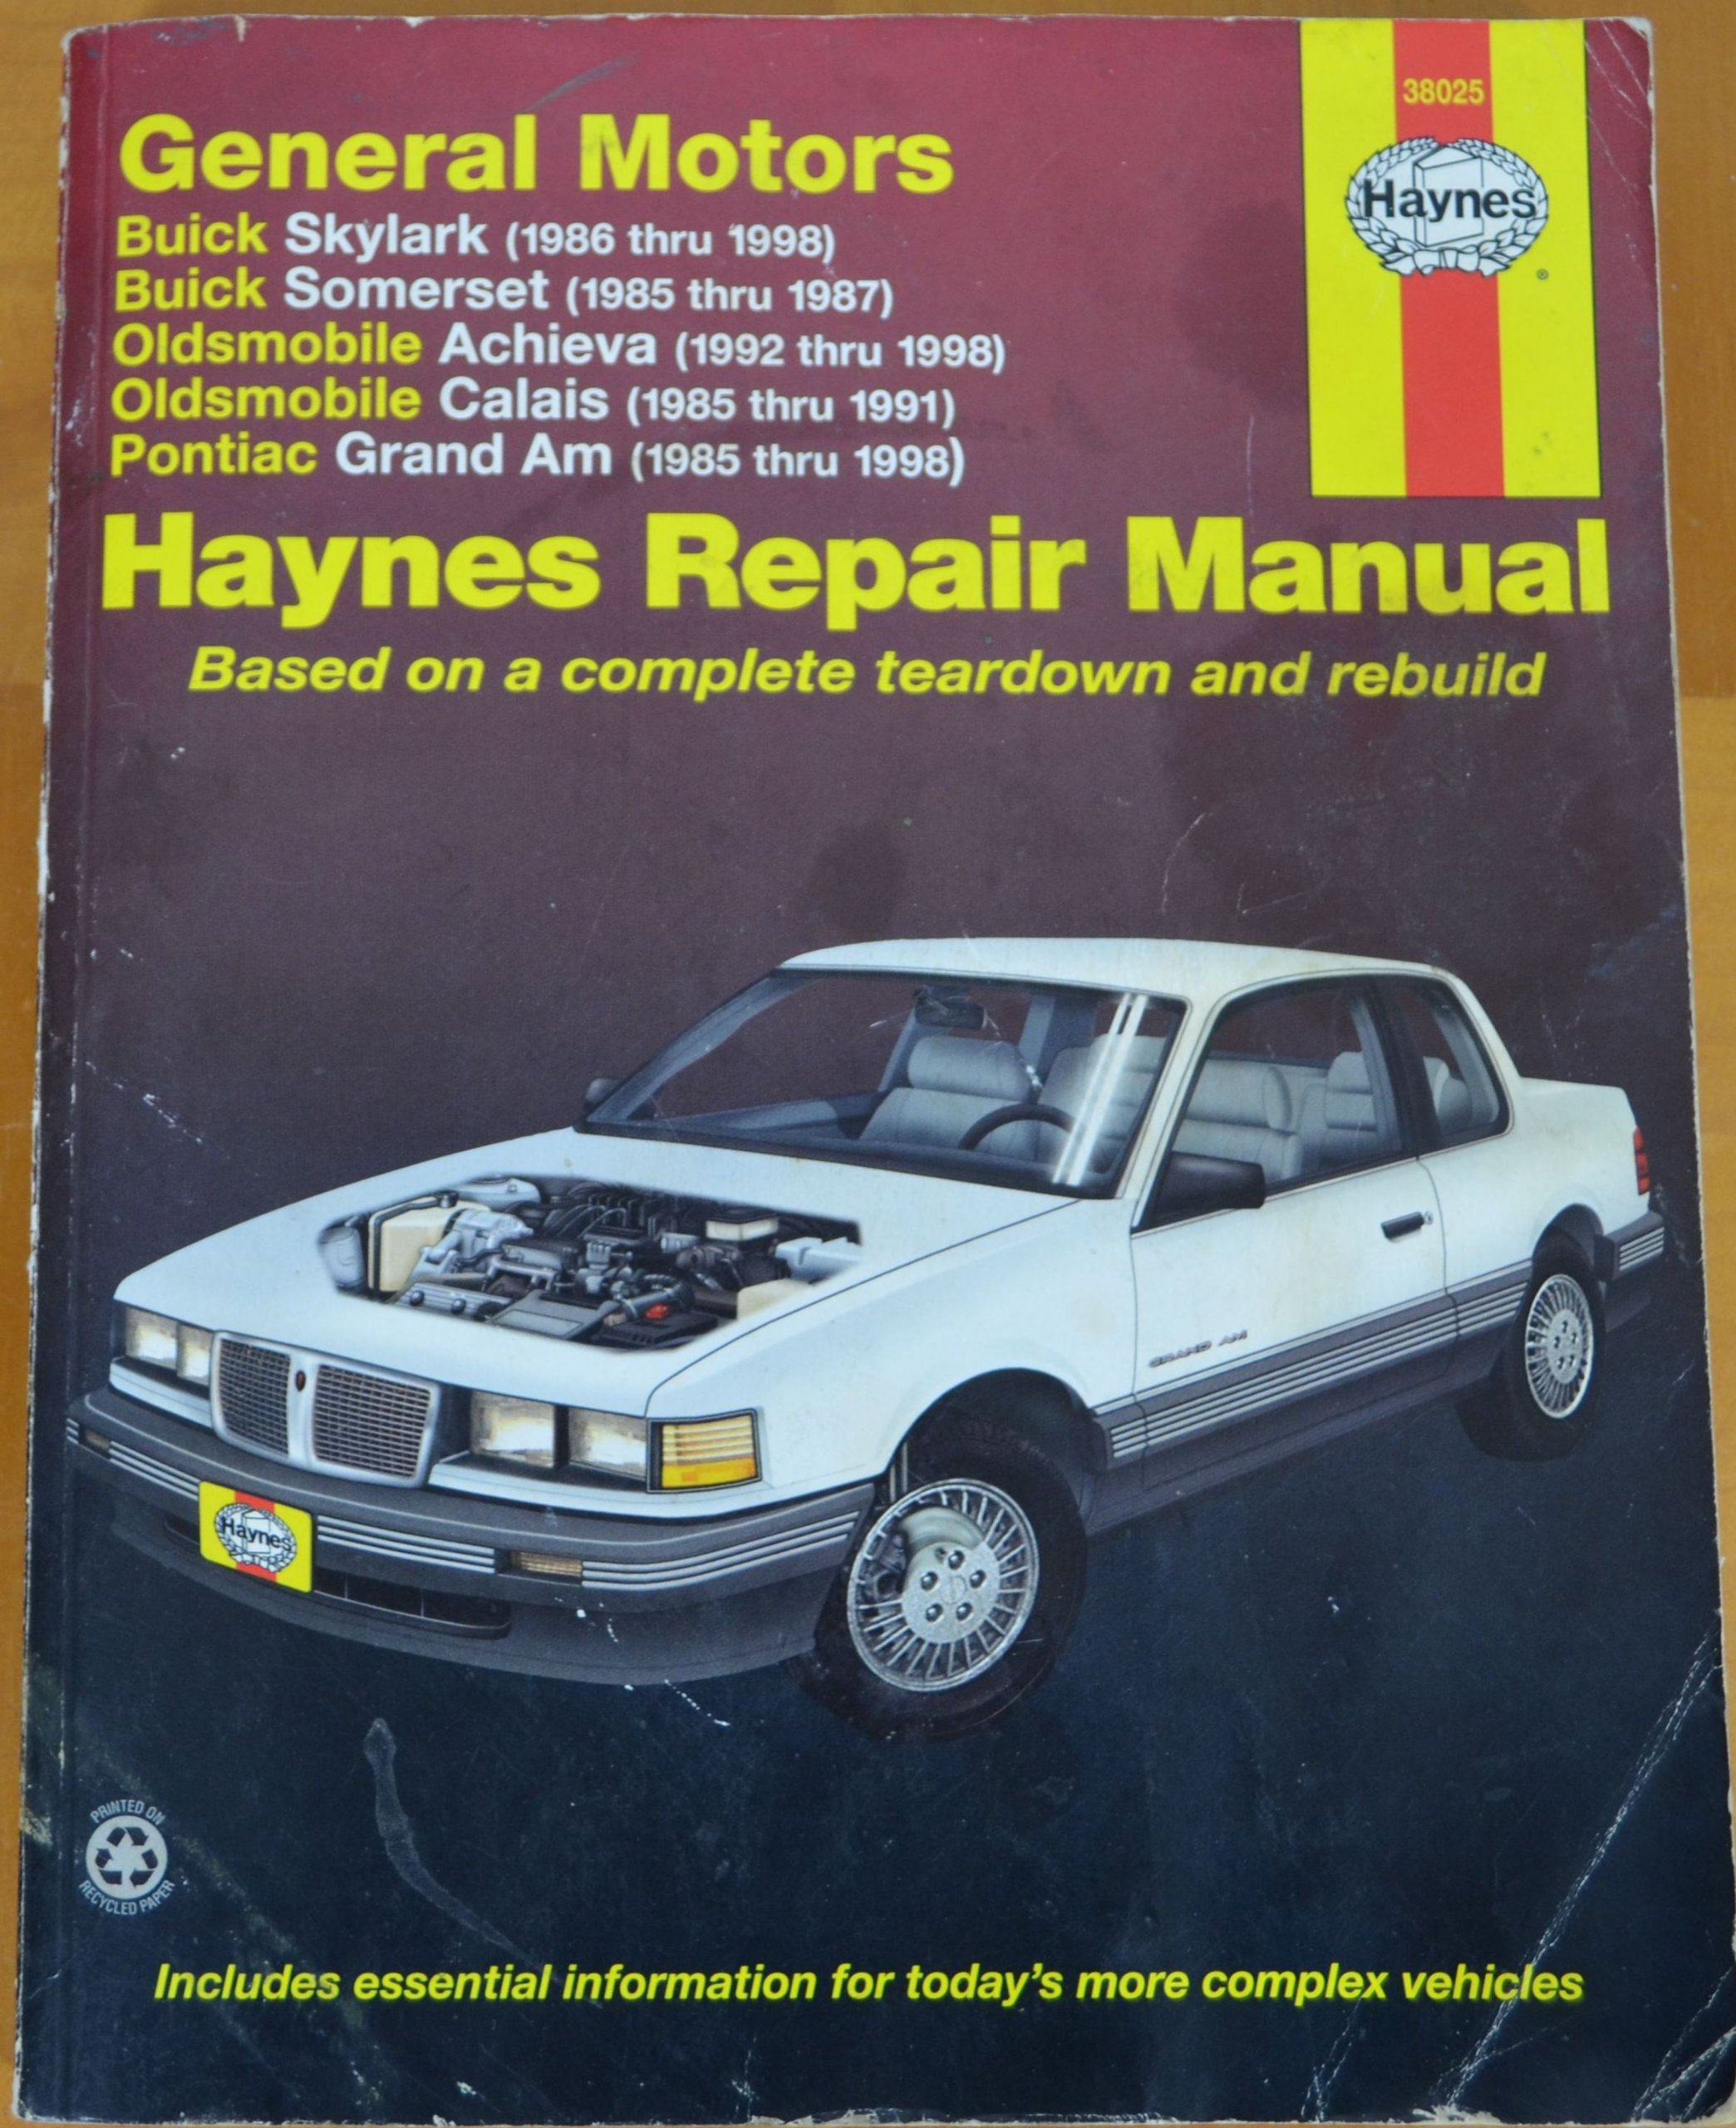 ... thru 1998) oldsmobile calais (1985 thru 1991) pontiac grand am (1985  thru 1998) (38025) (Haynes Repair Manual): Richard Lindwall: Amazon.com:  Books